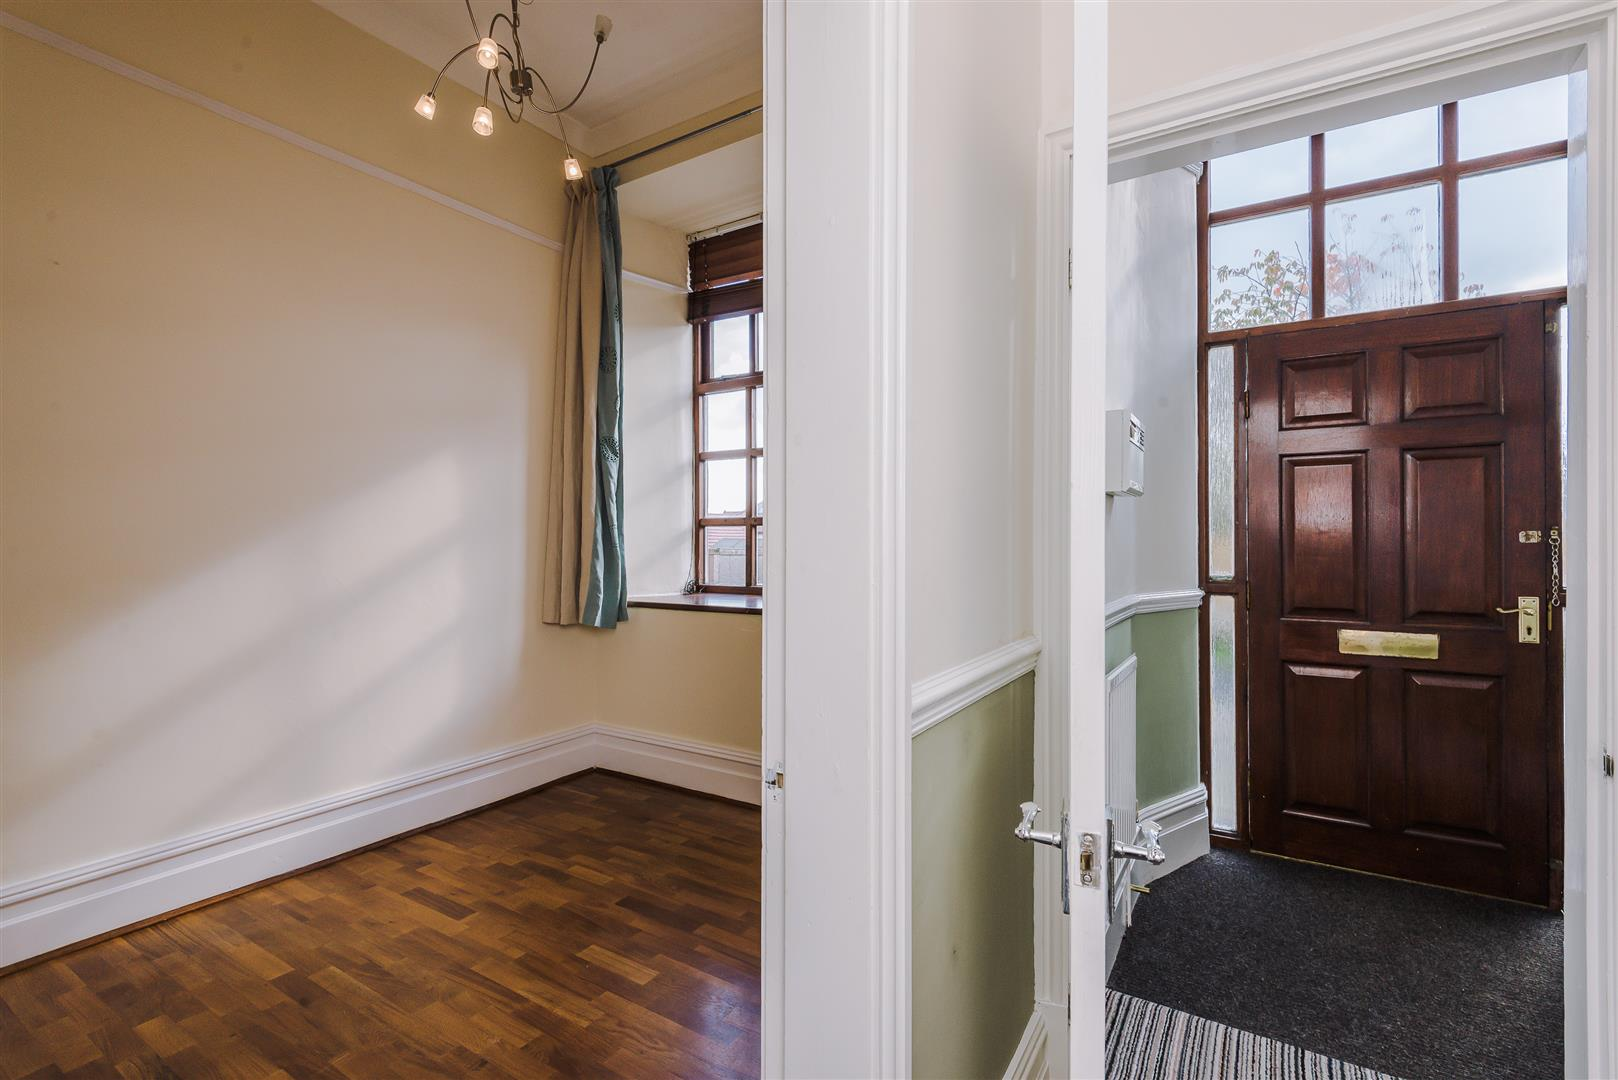 2 Bedroom Apartment For Sale Image 6